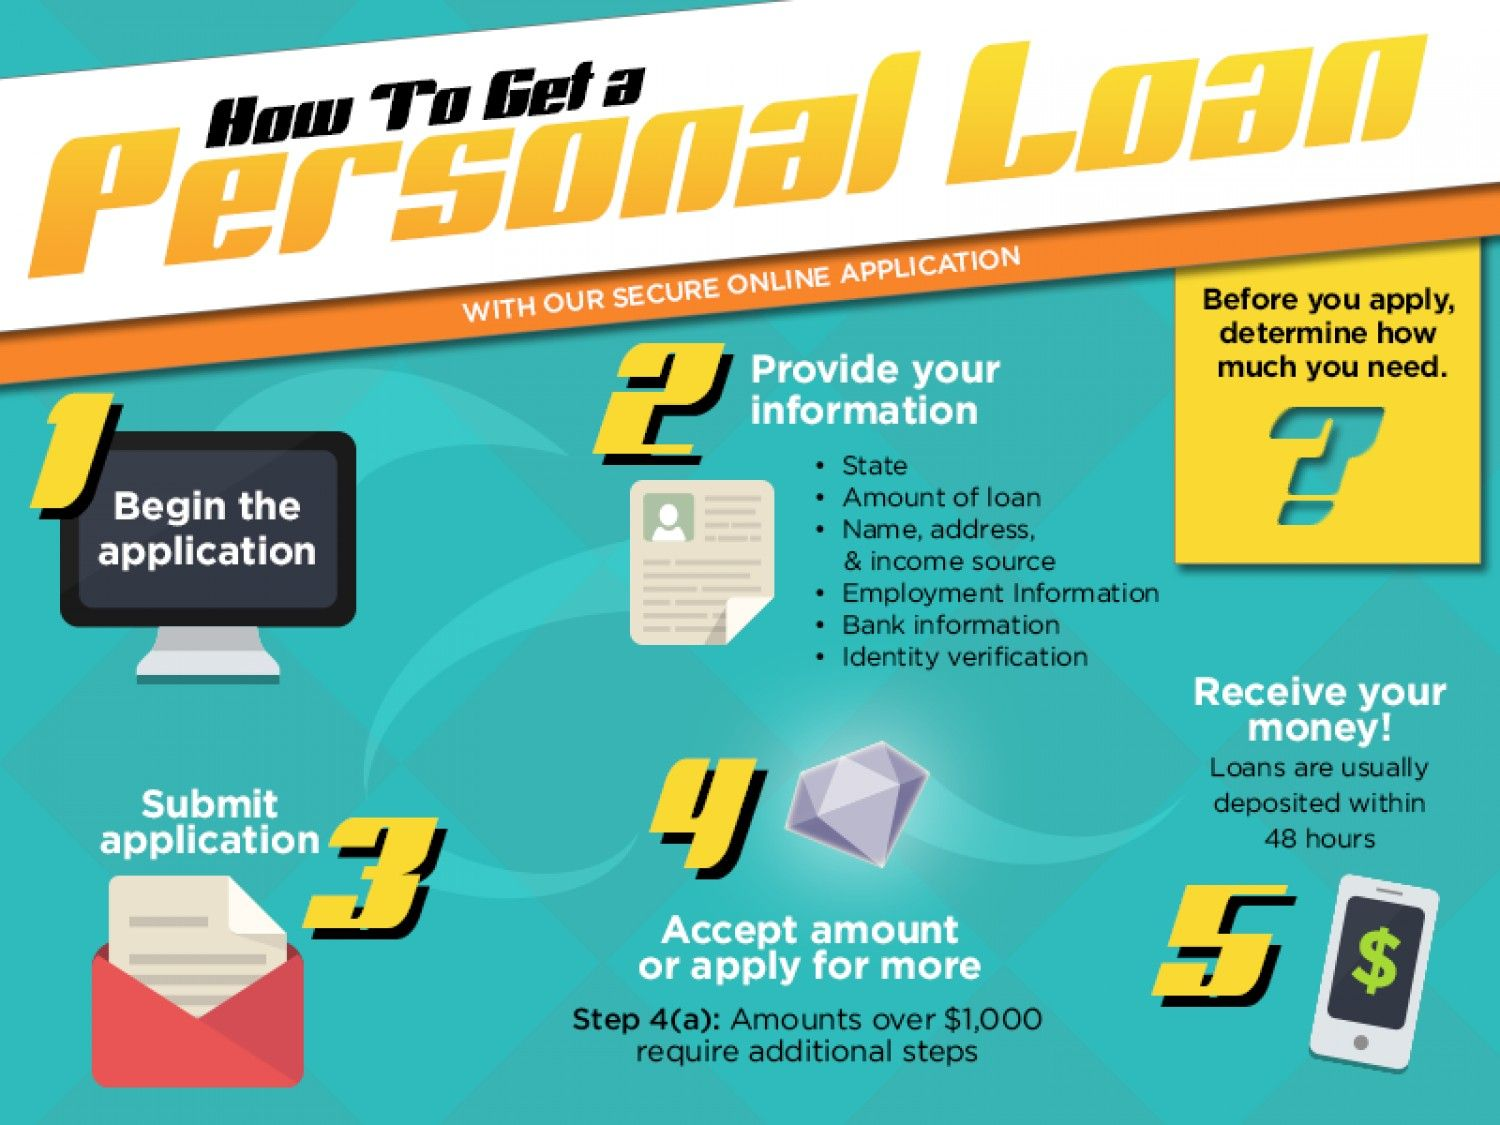 How to Get a Personal Loan Infographic | Finance | Pinterest